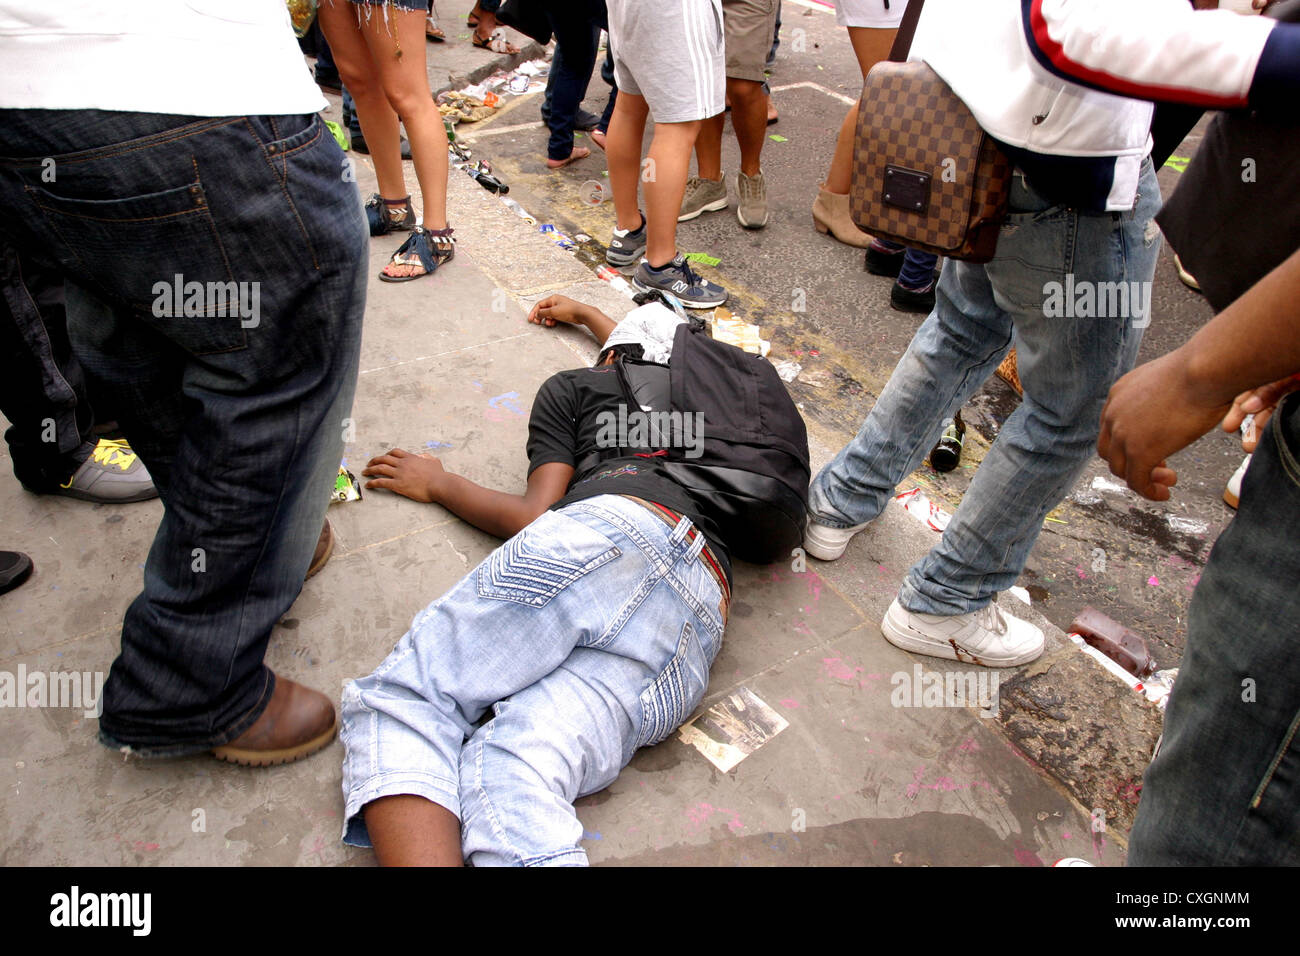 Youth collapsed in a crowded  street - Stock Image